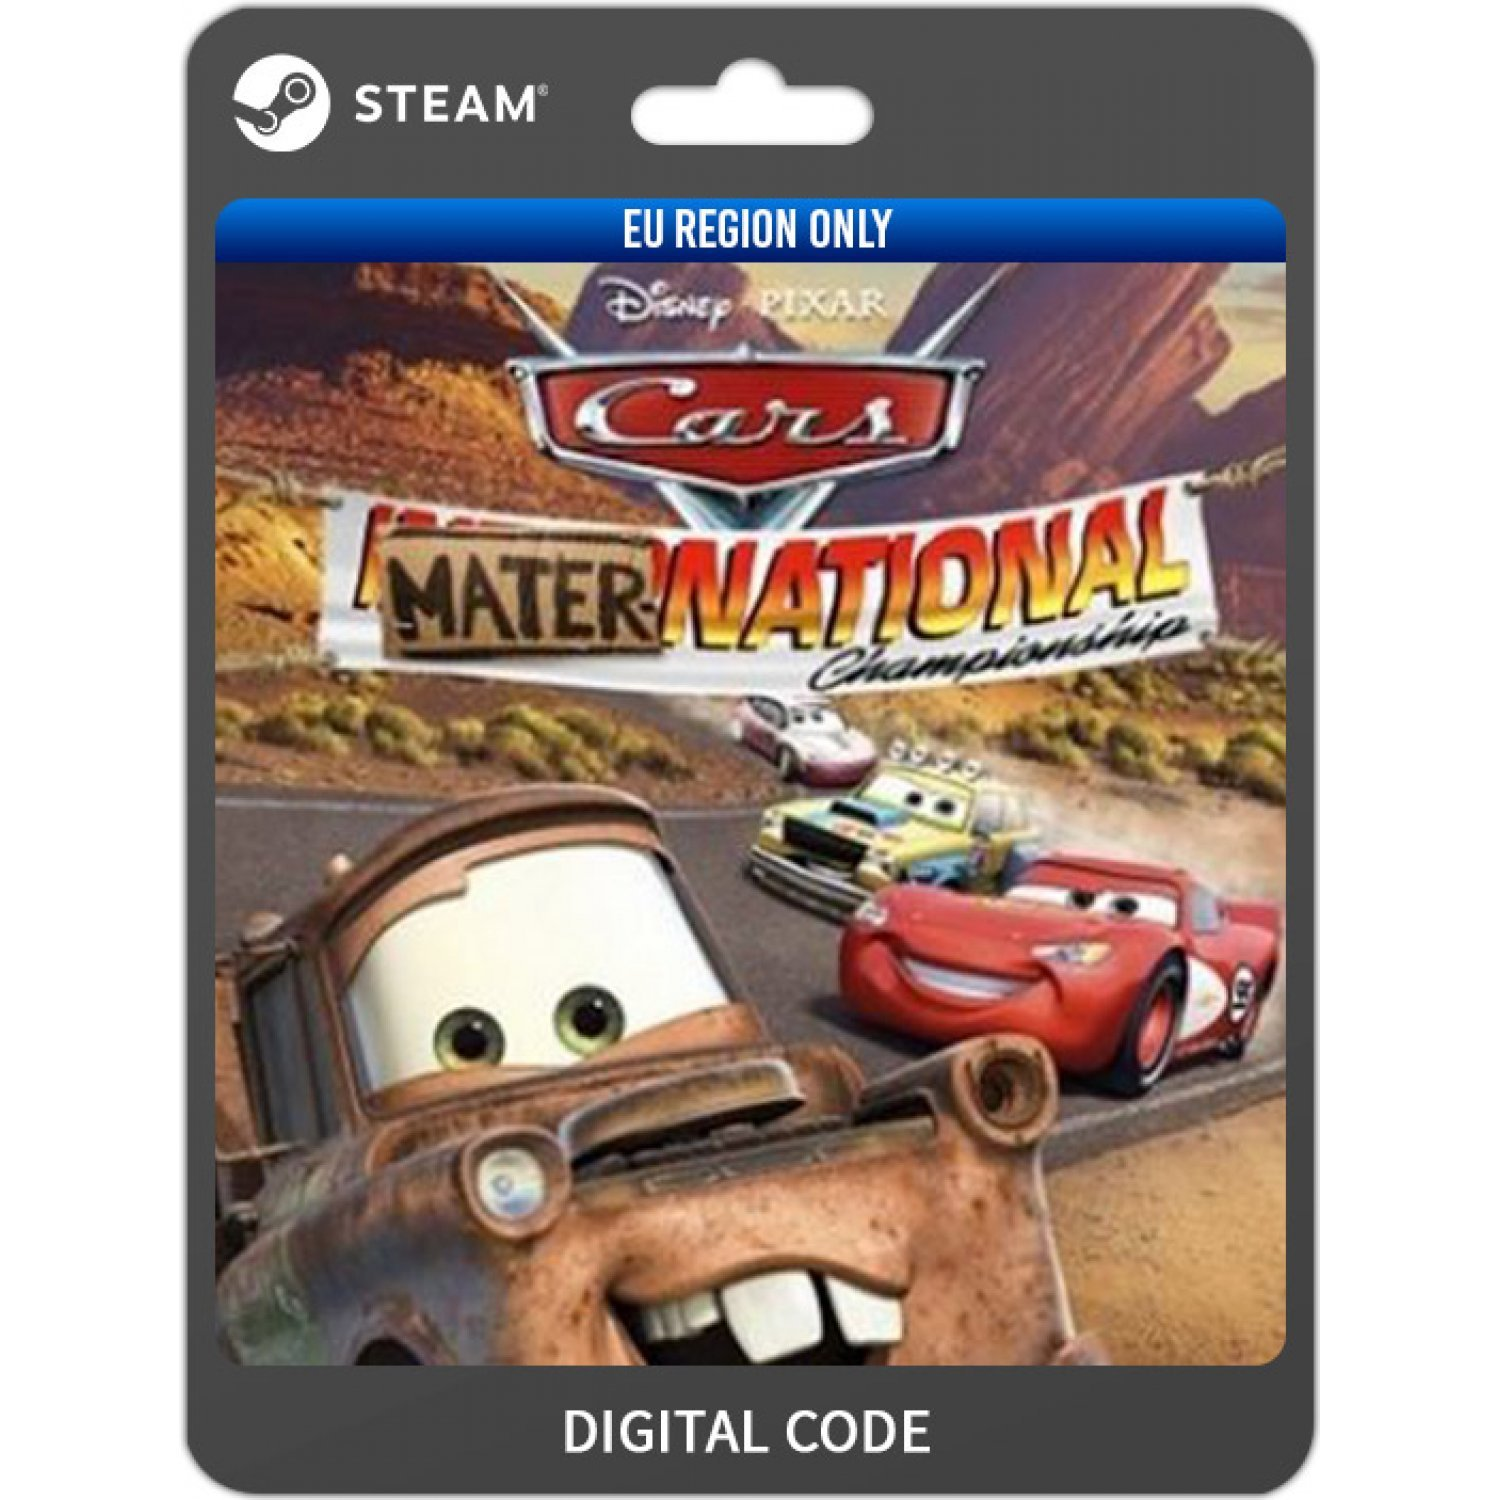 Fillmore Hentai disney pixar cars: mater-national championship